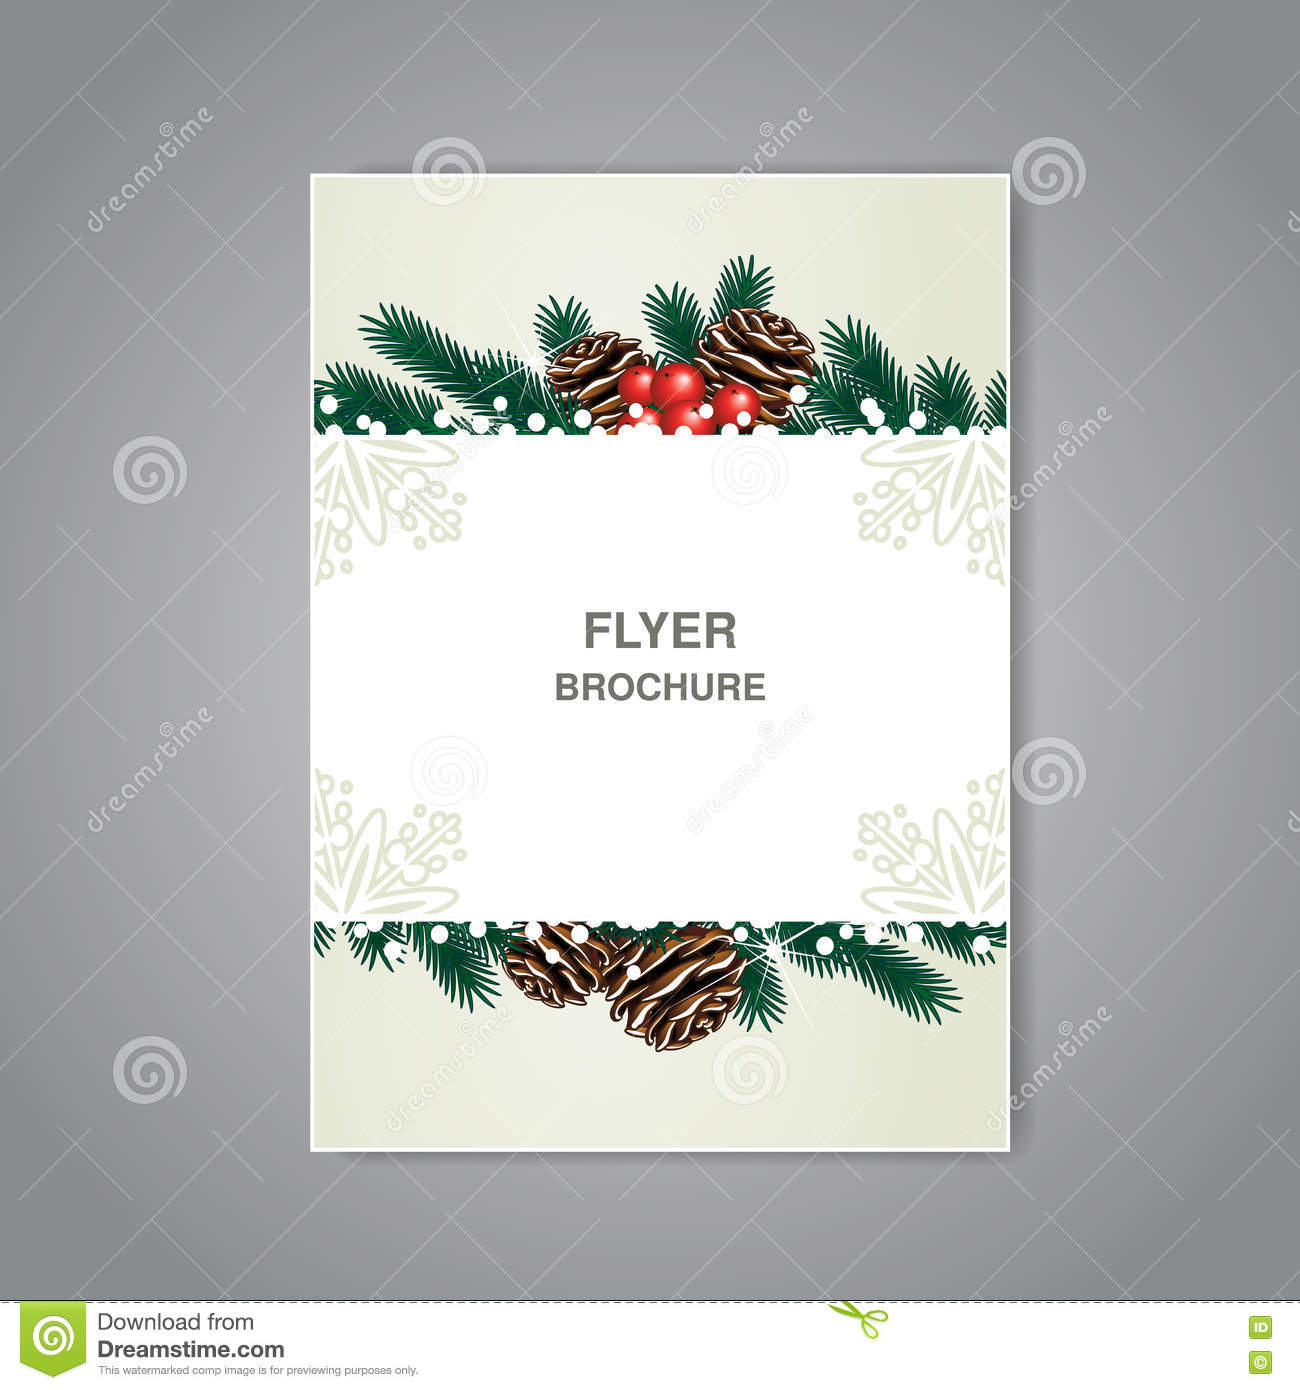 flyer template christmas theme and decoration cover design christmas brochure twigs cones and snow beige flyer or book design poster